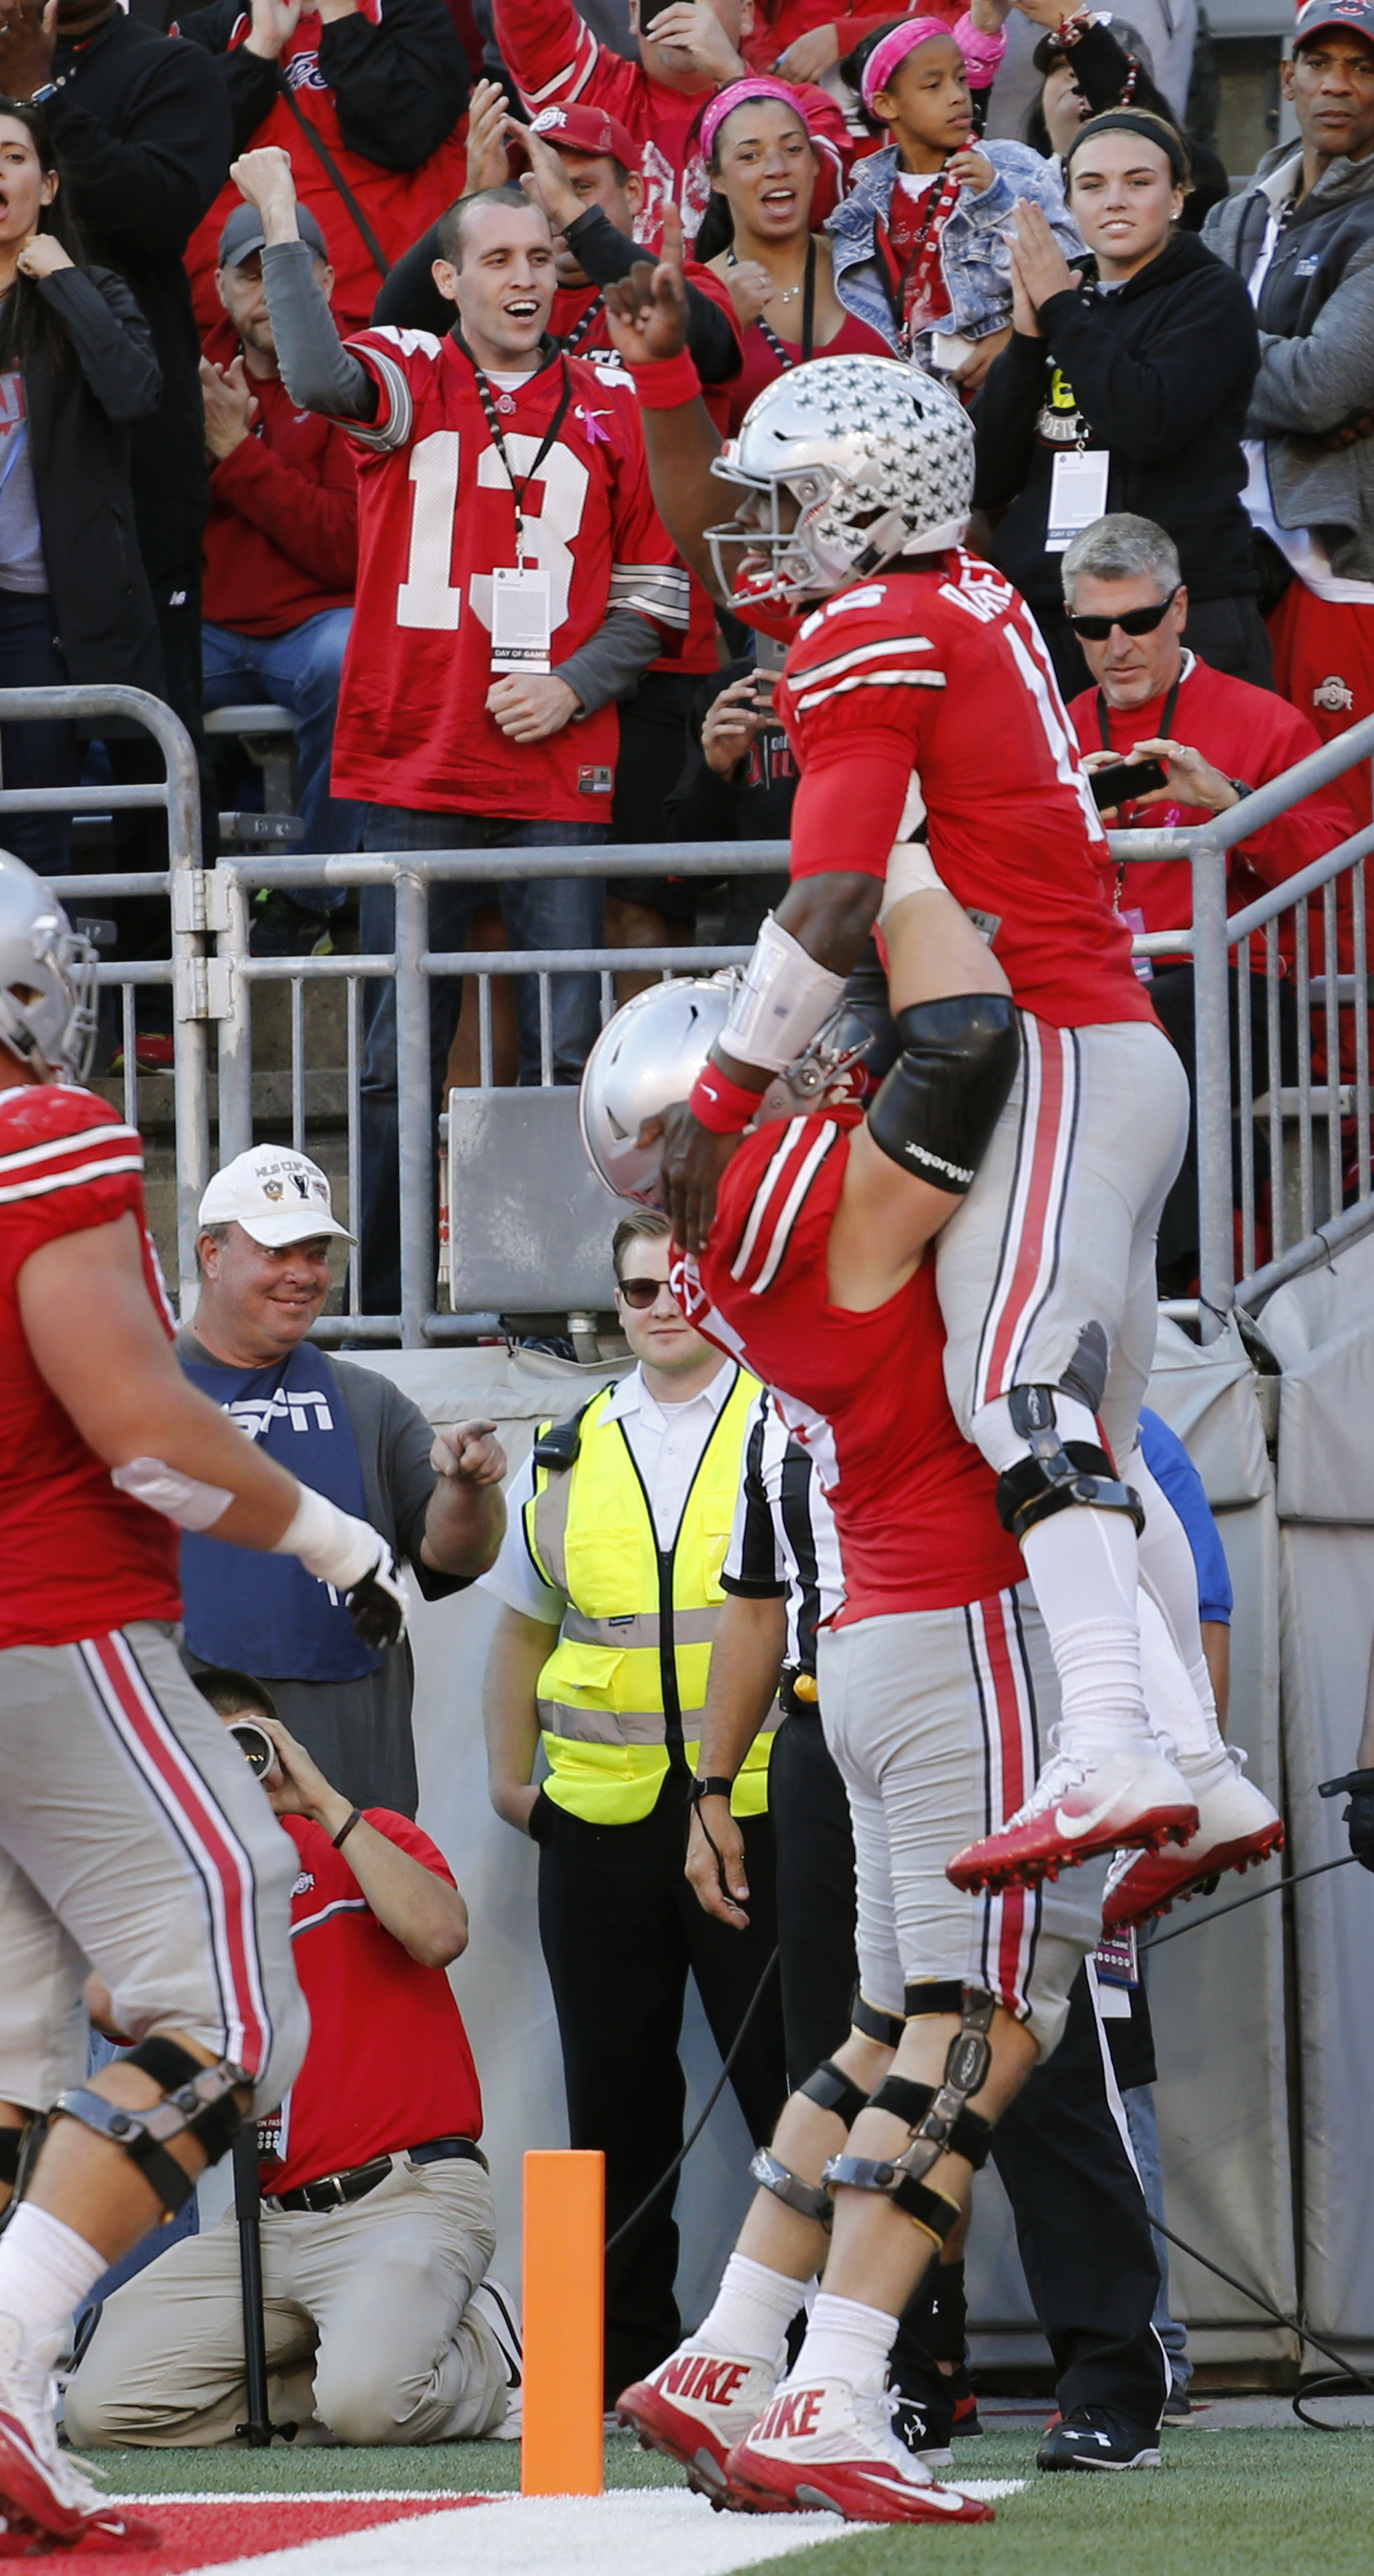 Ohio State quarterback J.T. Barrett, top, celebrates his touchdown against against Indiana with teammate Pat Elflein during the first half of an NCAA college football game Saturday, Oct. 8, 2016, in Columbus, Ohio. (AP Photo/Jay LaPrete)